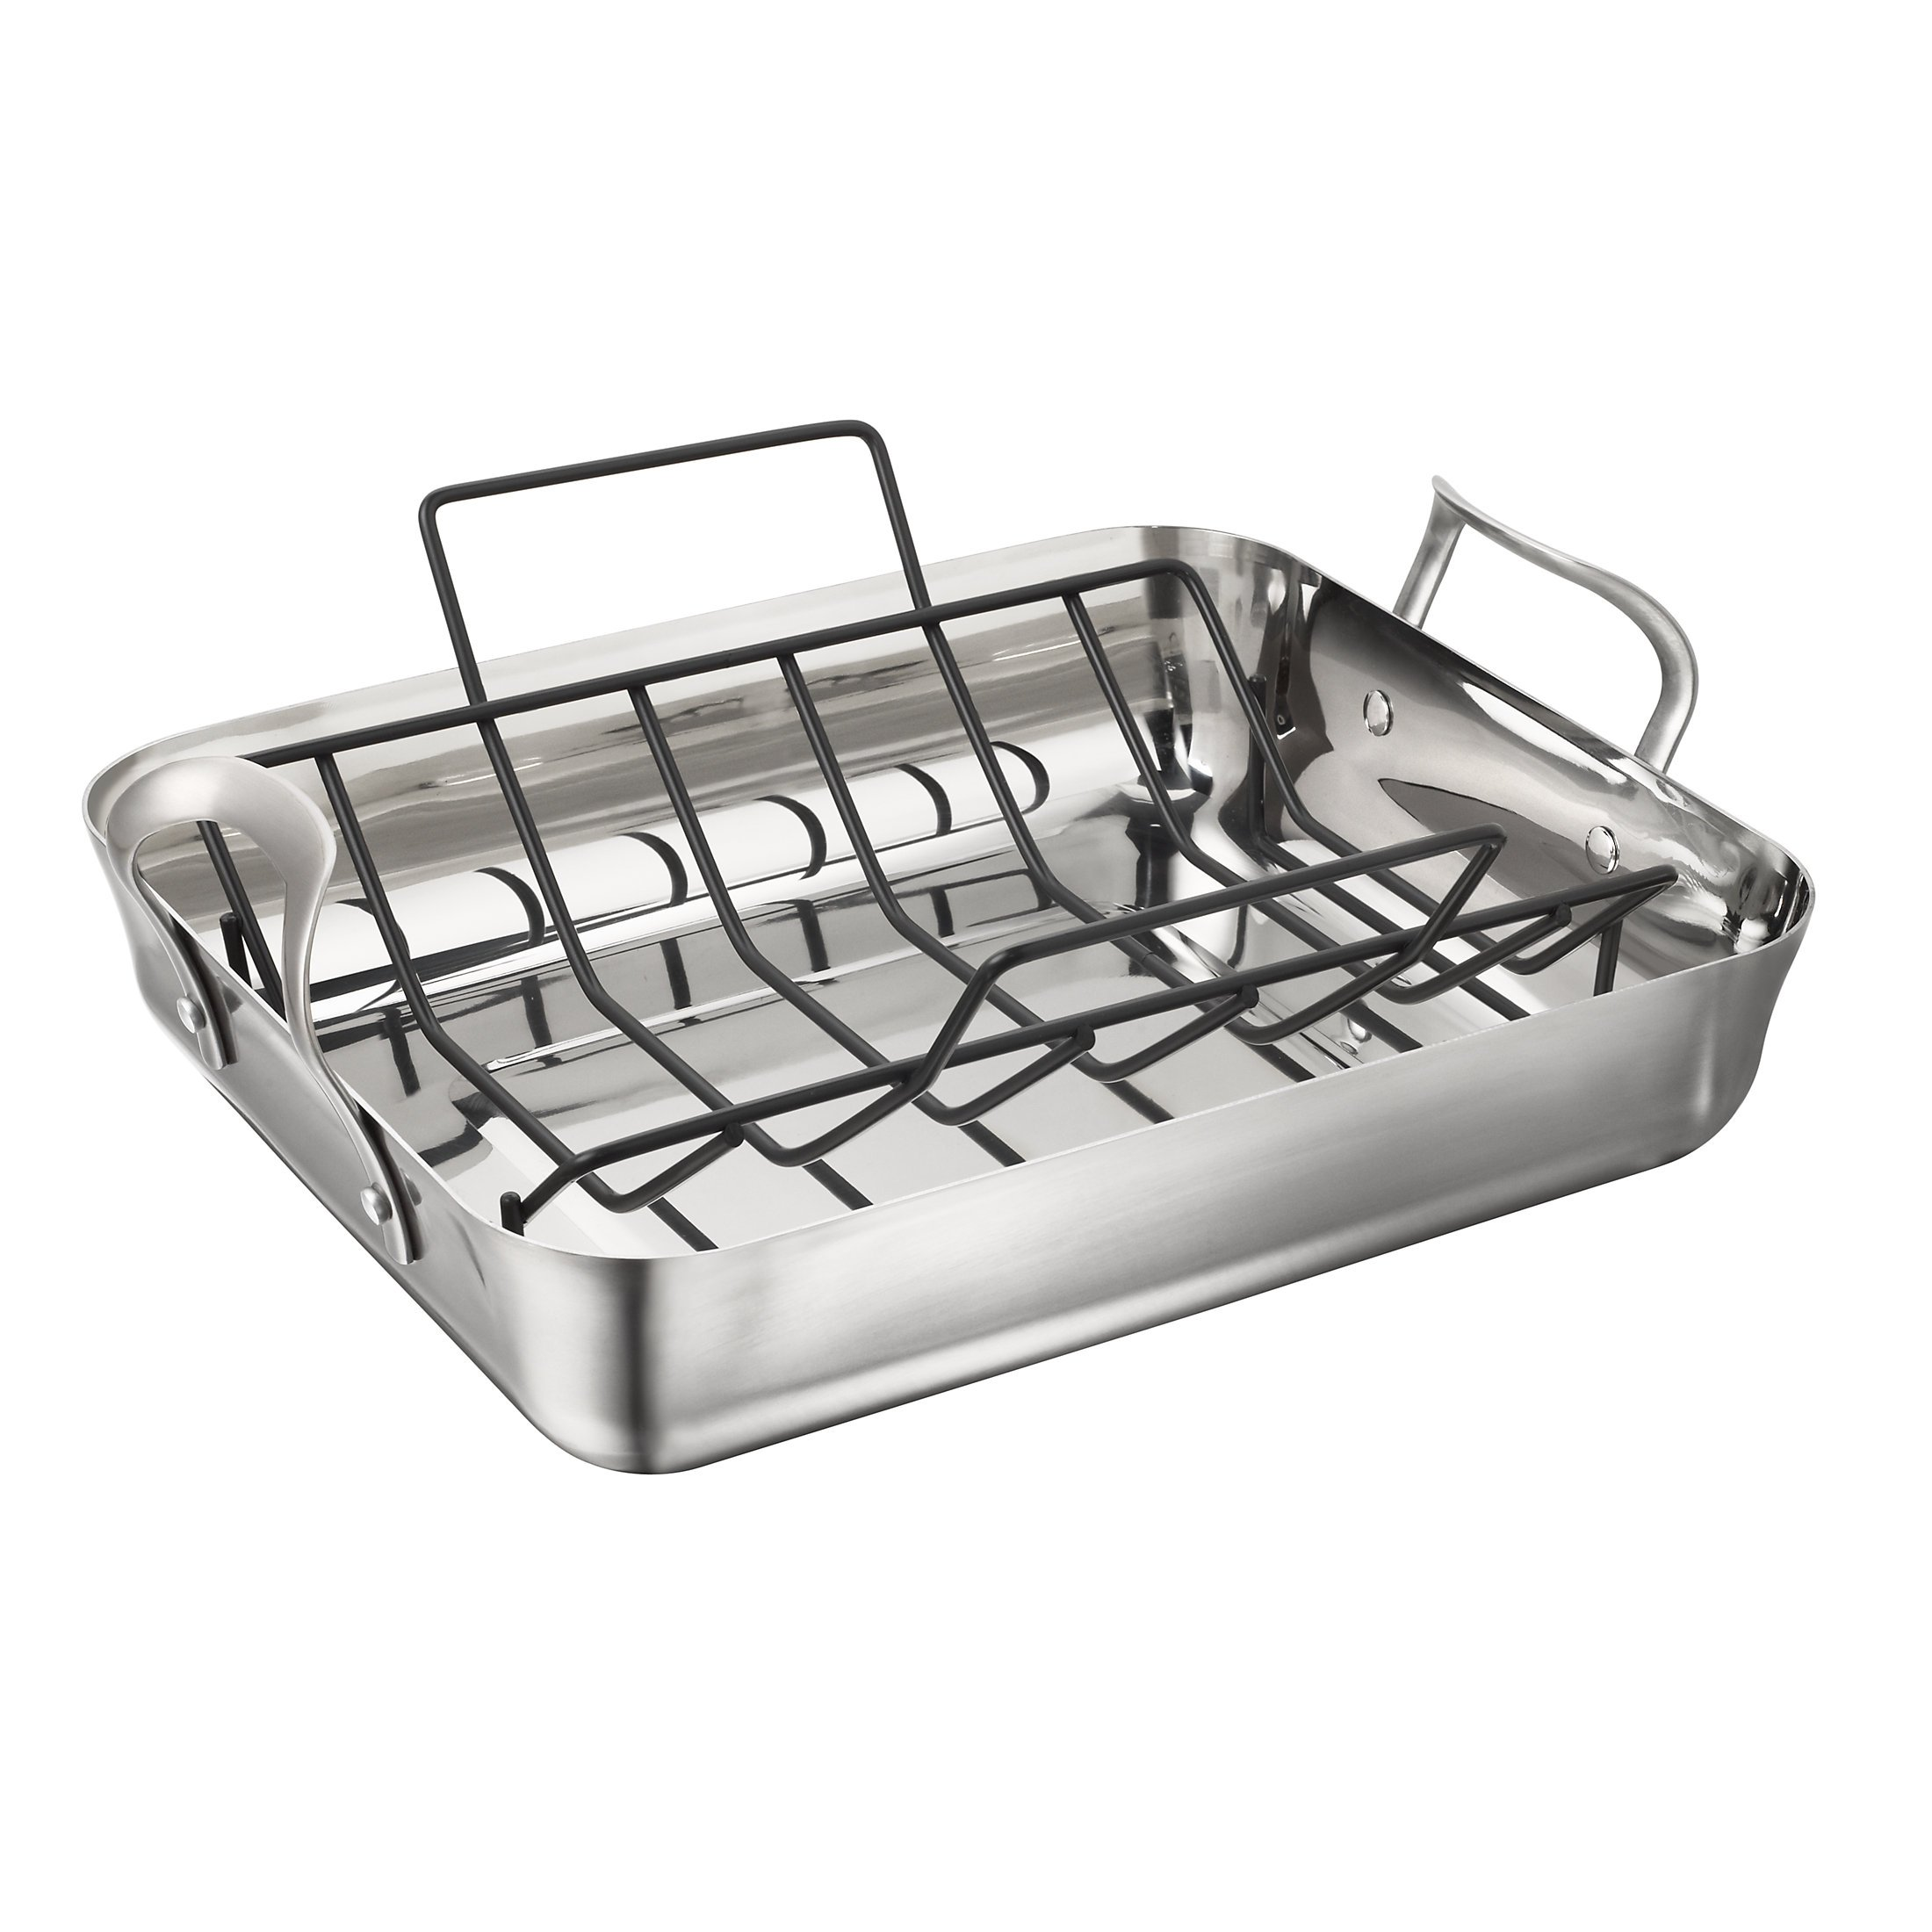 Calphalon Contemporary 16-Inch Stainless Steel Roasting Pan with Rack by Calphalon